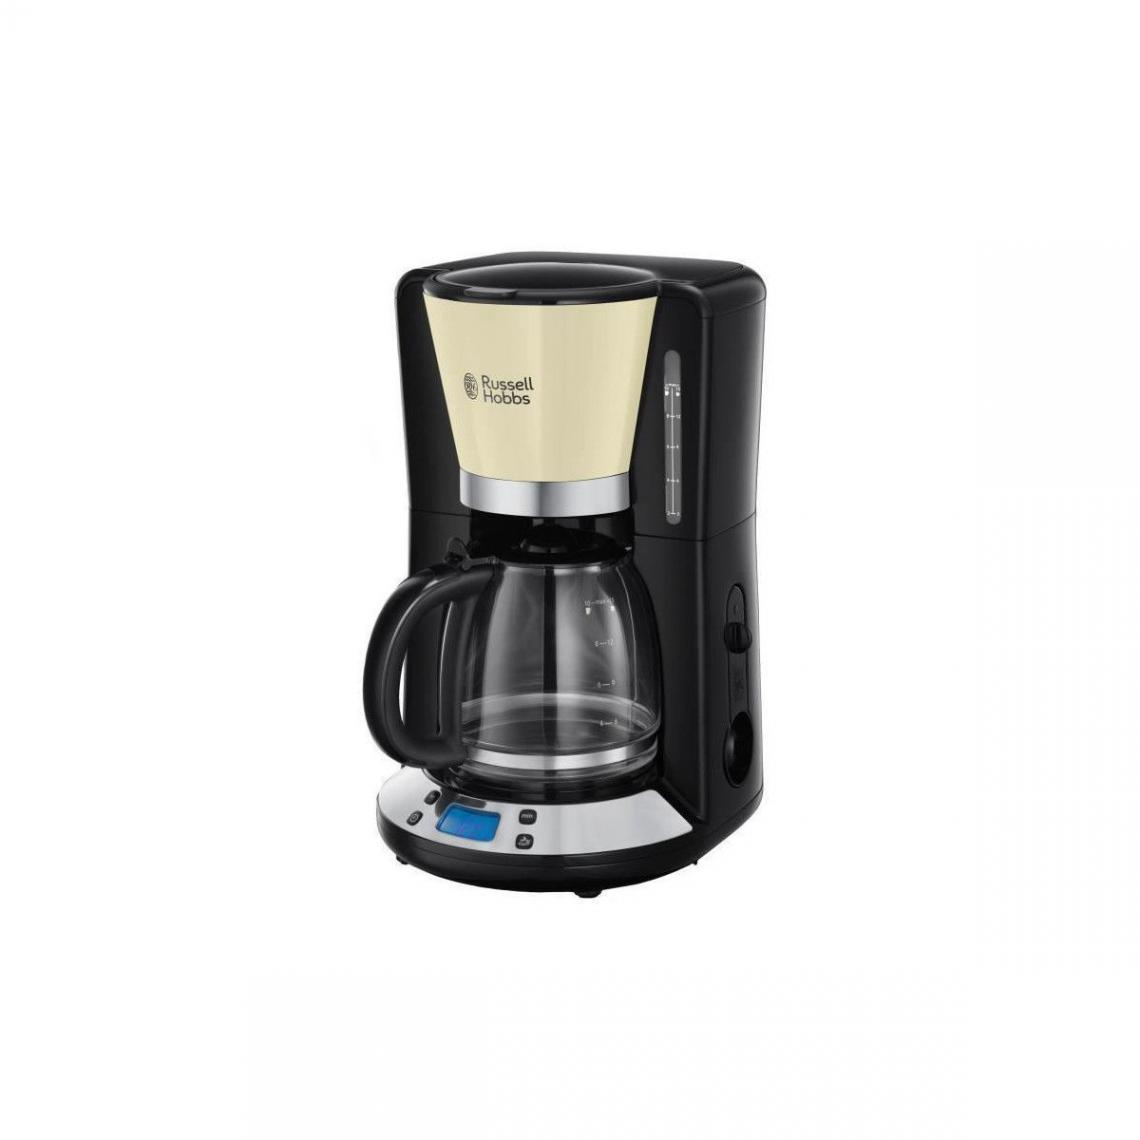 Russell Hobbs RUSSELL HOBBS 24033-56 - Cafetiere programmable Colours Plus - Technologie WhirlTech - 15 tasses - 1100 W - Creme